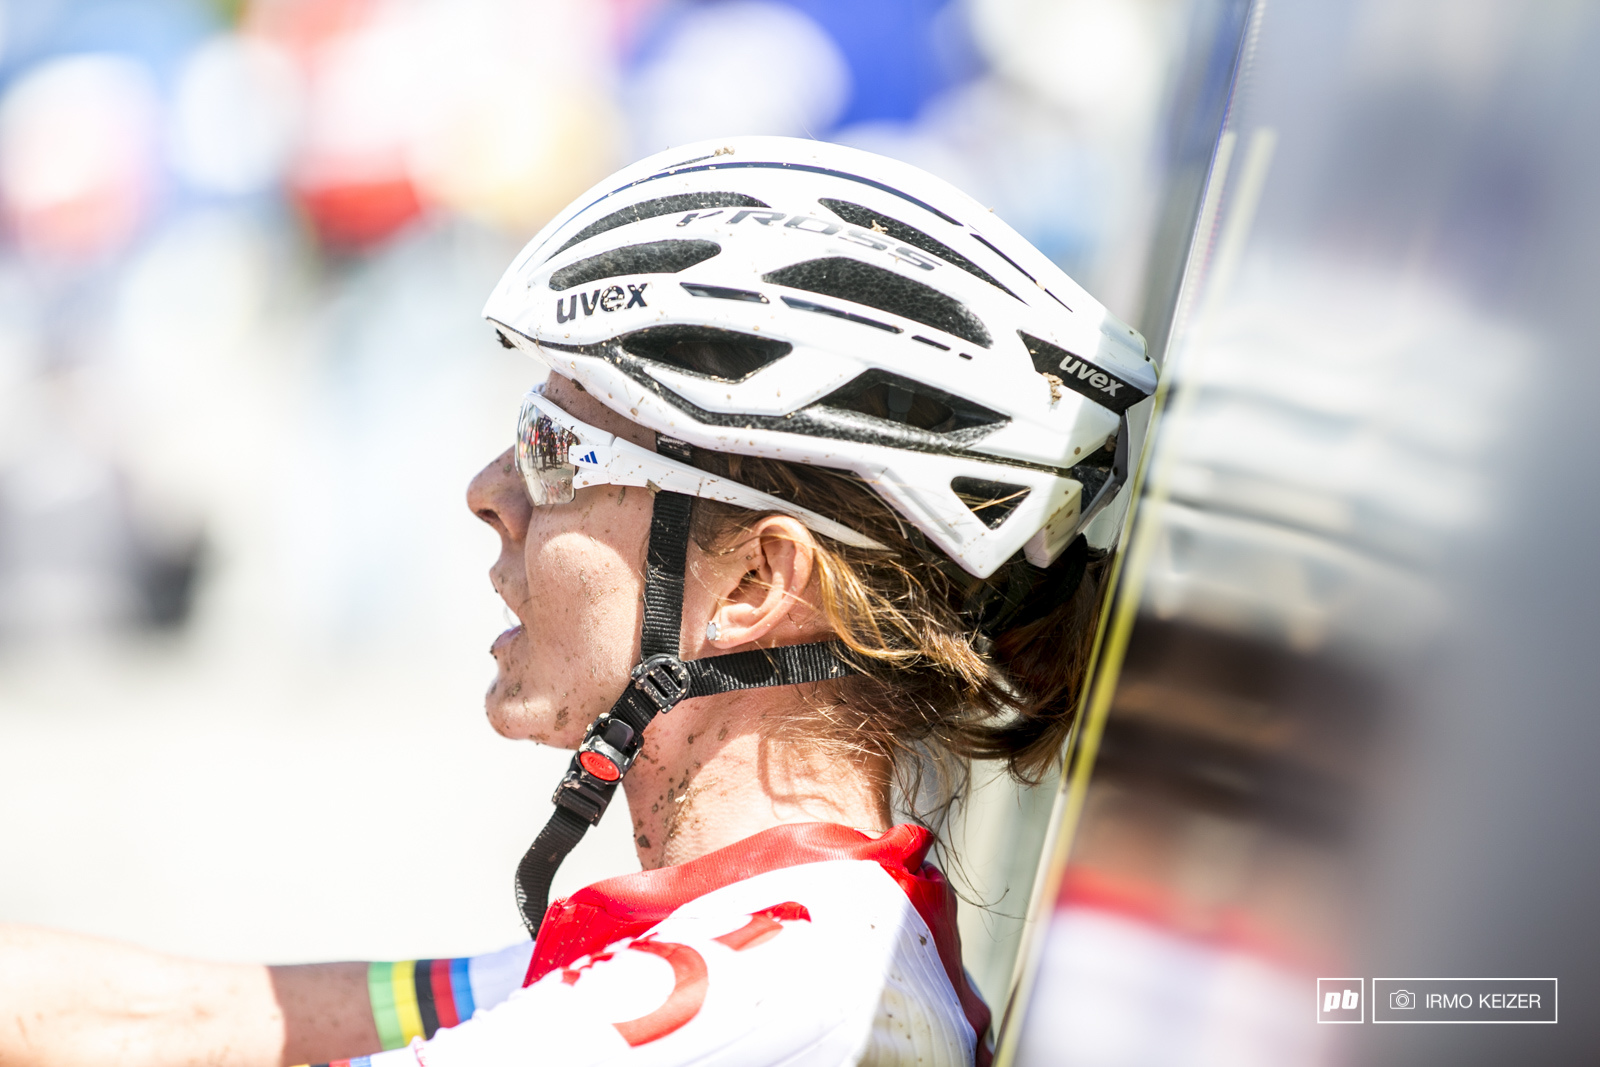 Maja fought hard and battled up front all race. She finished in 6th but watch this girl for next year.